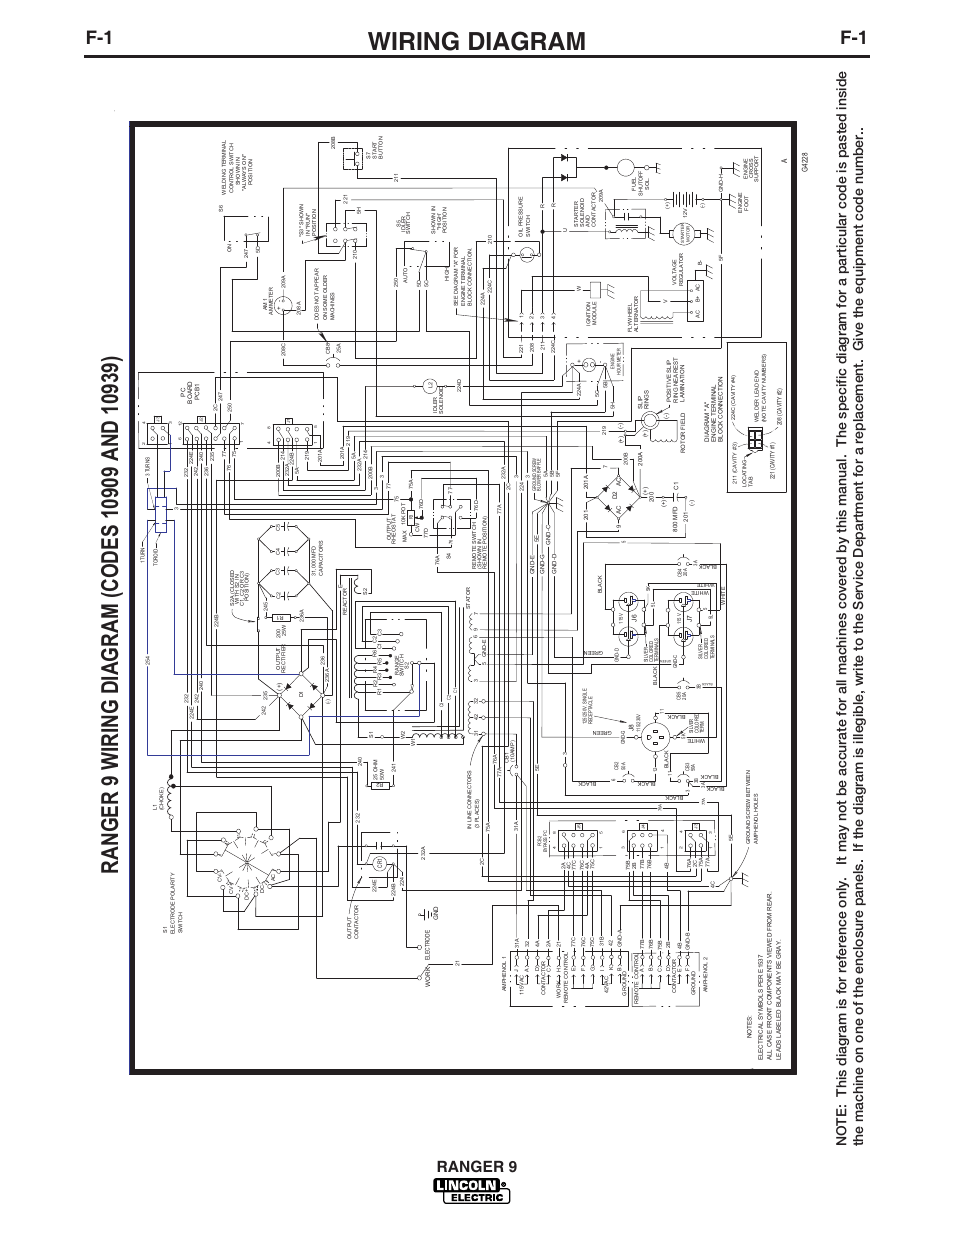 Lincoln Ranger 250 Welder Wiring Diagram. Lincoln. Auto